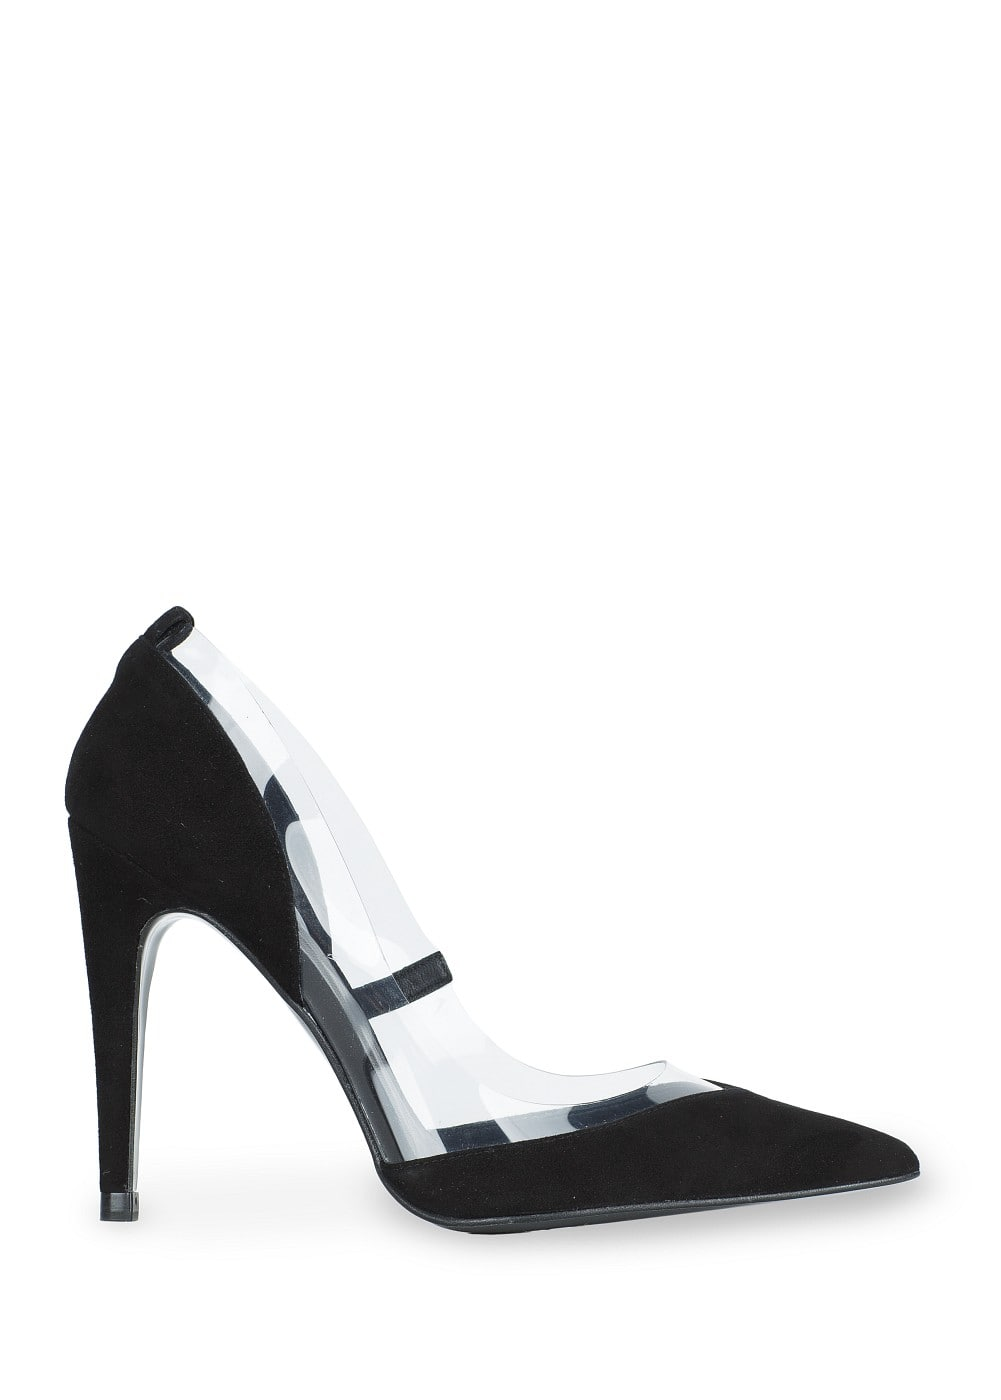 PREMIUM - Suede and vinyl stiletto shoes